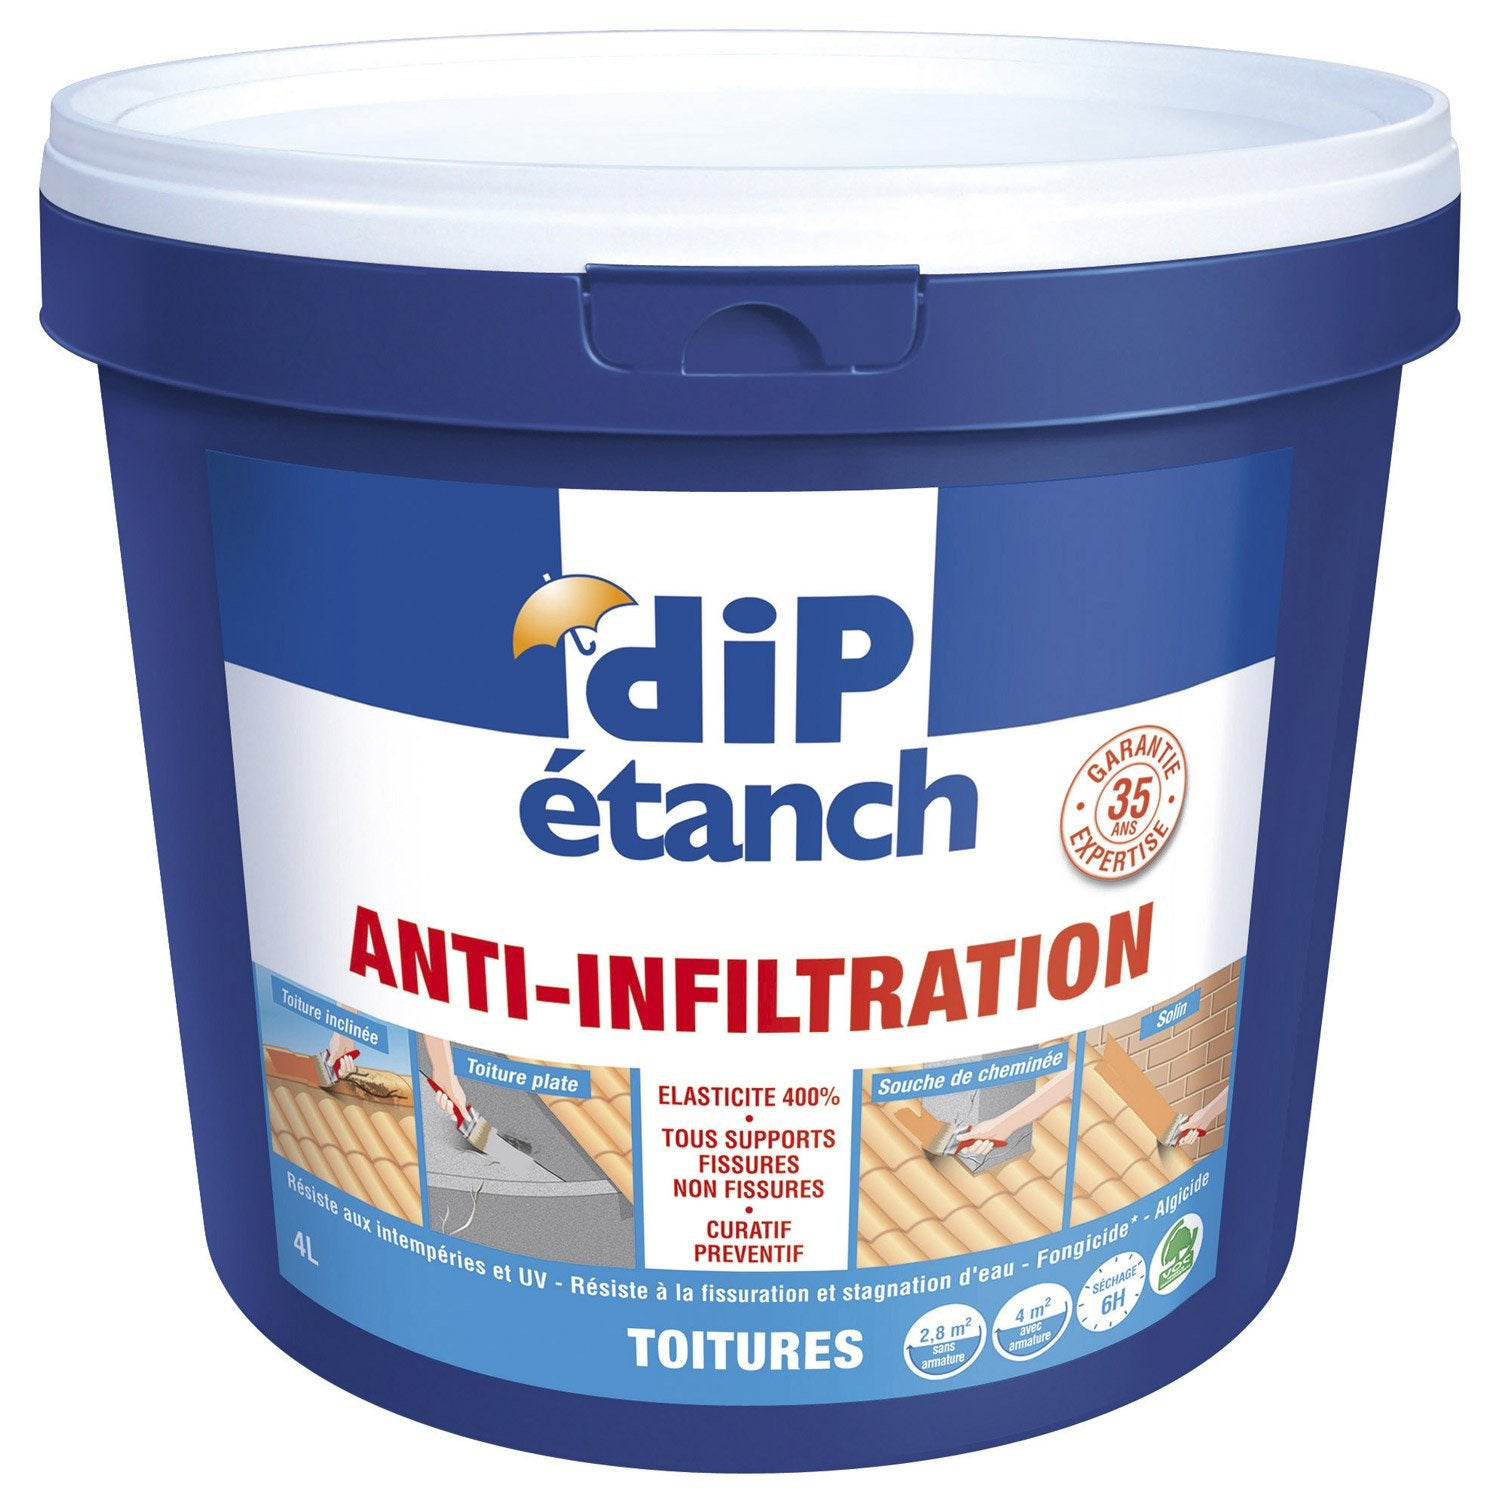 Rev tement d 39 tanch it toiture anti infiltration dip terre cuite 4 l - Dip etanch anti infiltration ...